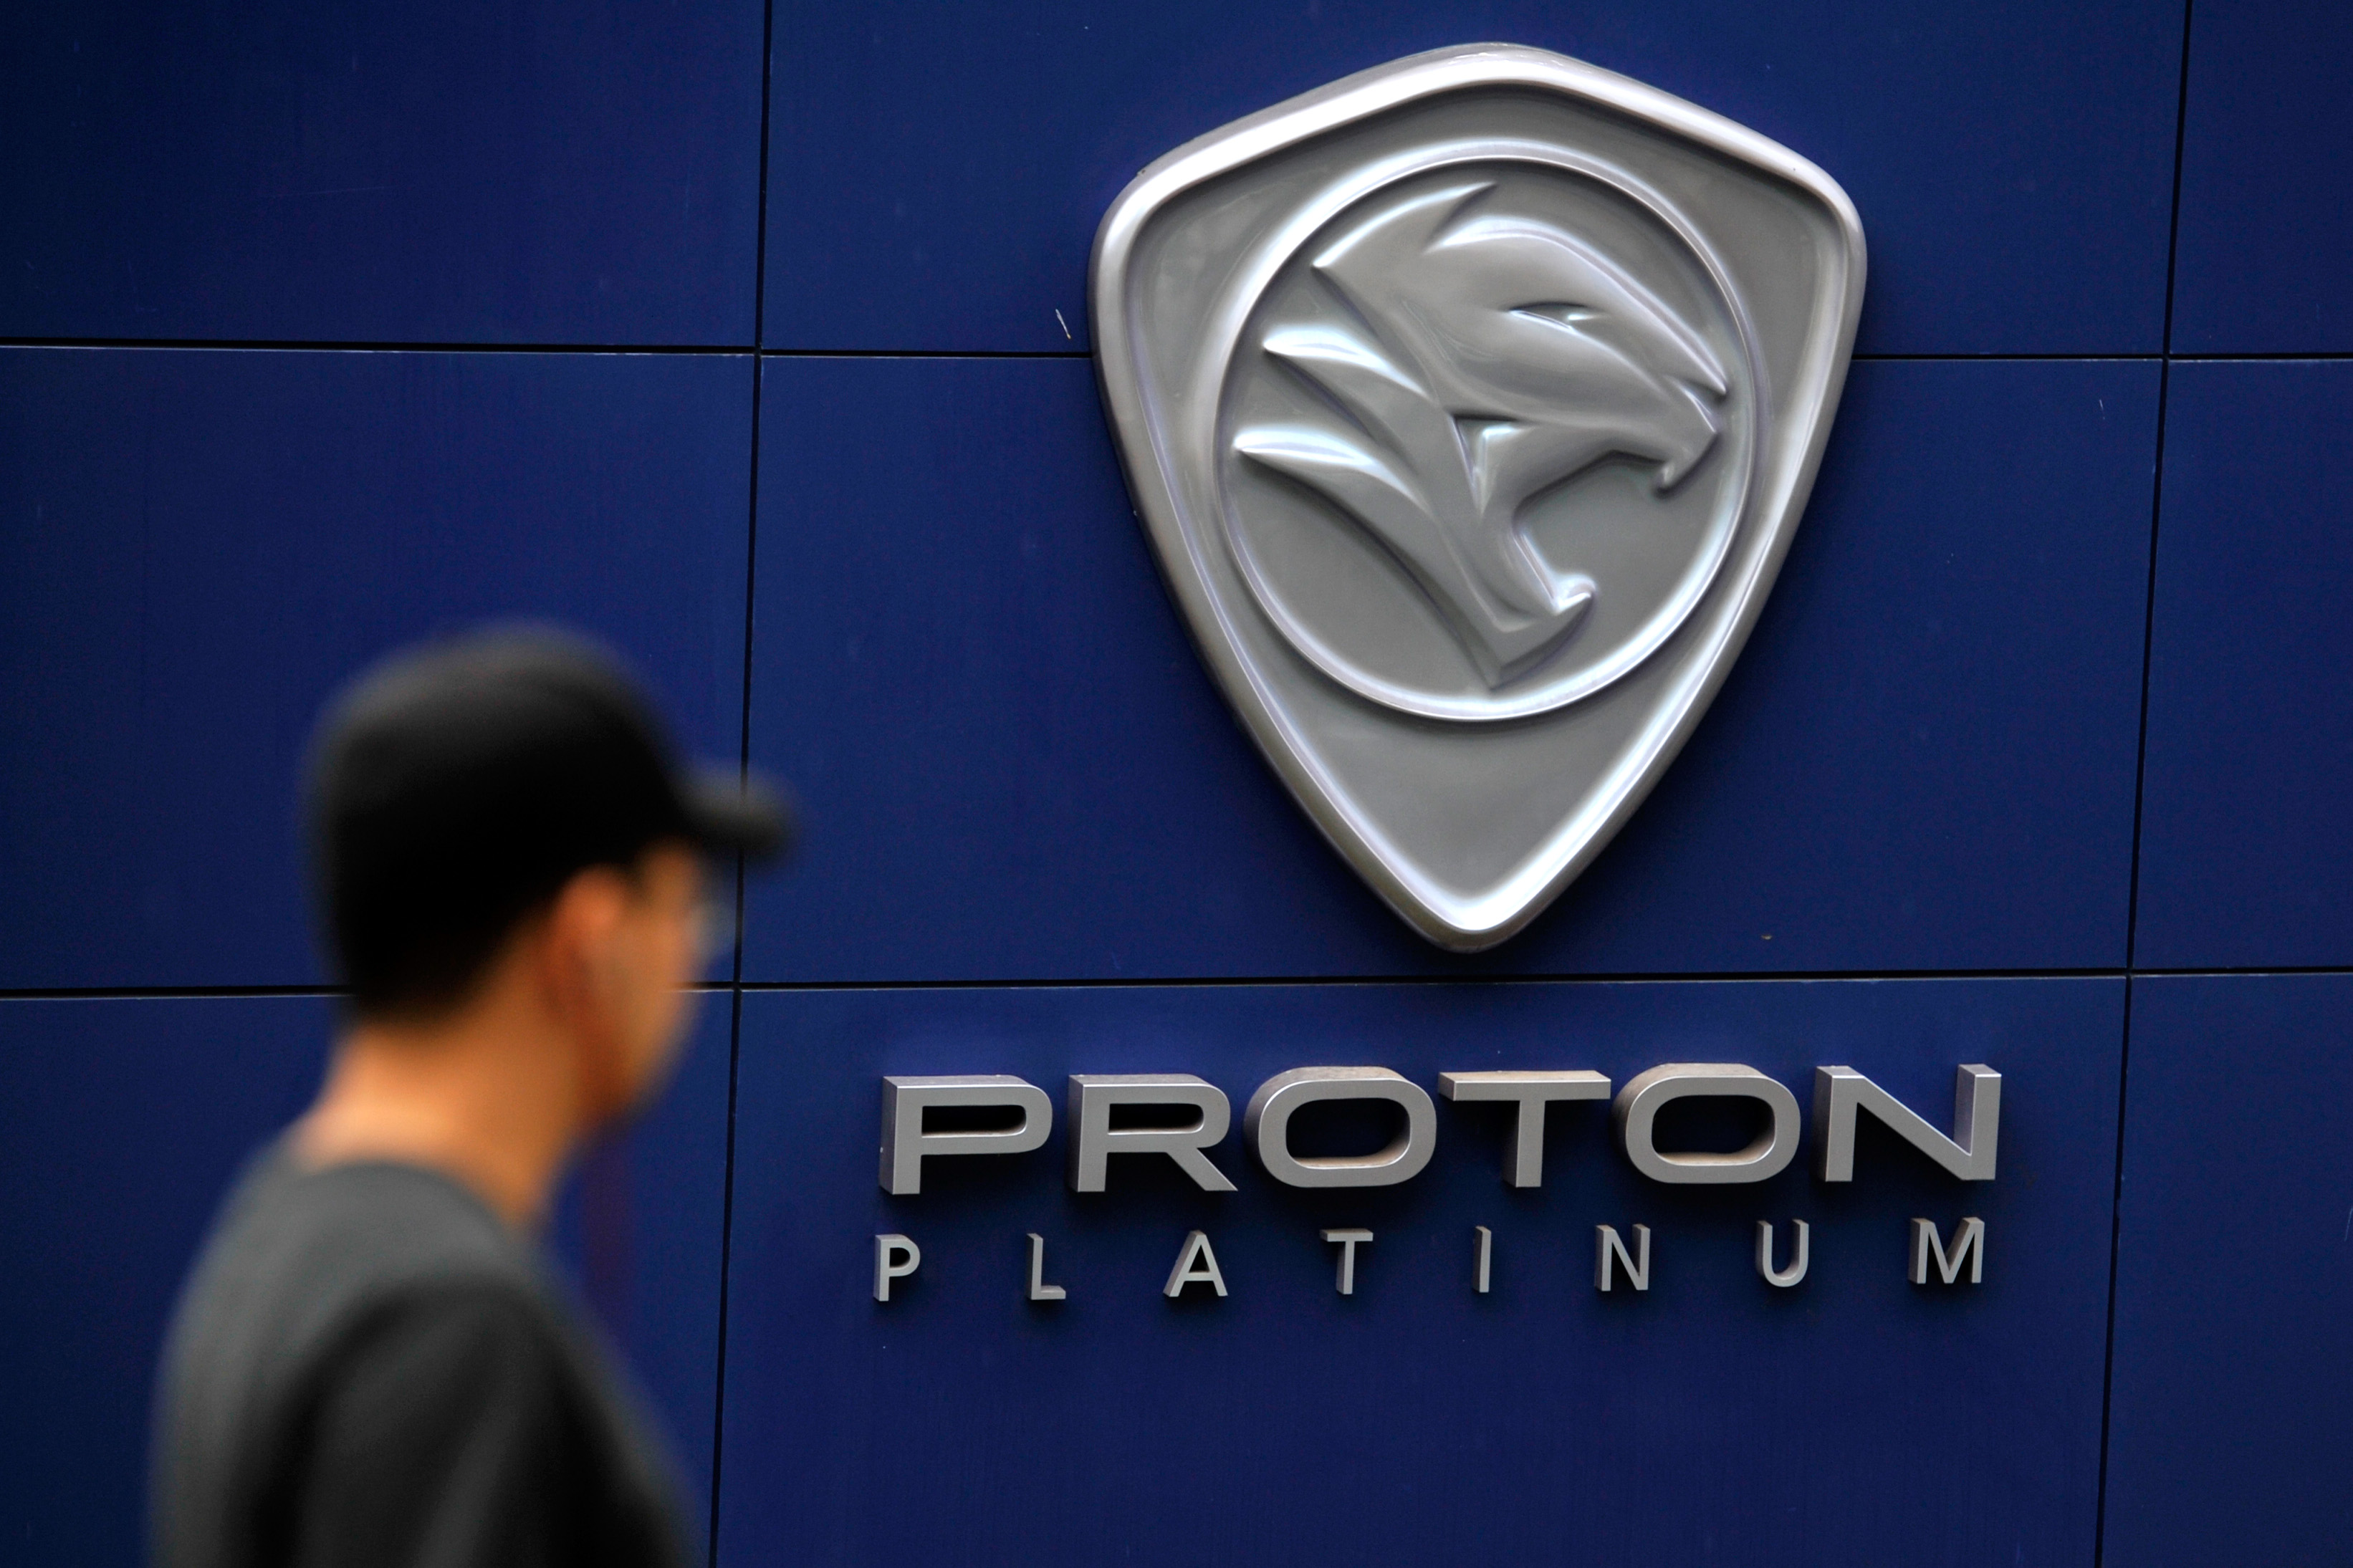 Geely Automobile Holdings Ltd. is among the companies bidding to make a strategic investment in Malaysian automaker Proton Holdings Berhad, according to a report in Malaysian newspaper The Star. Photo: IC